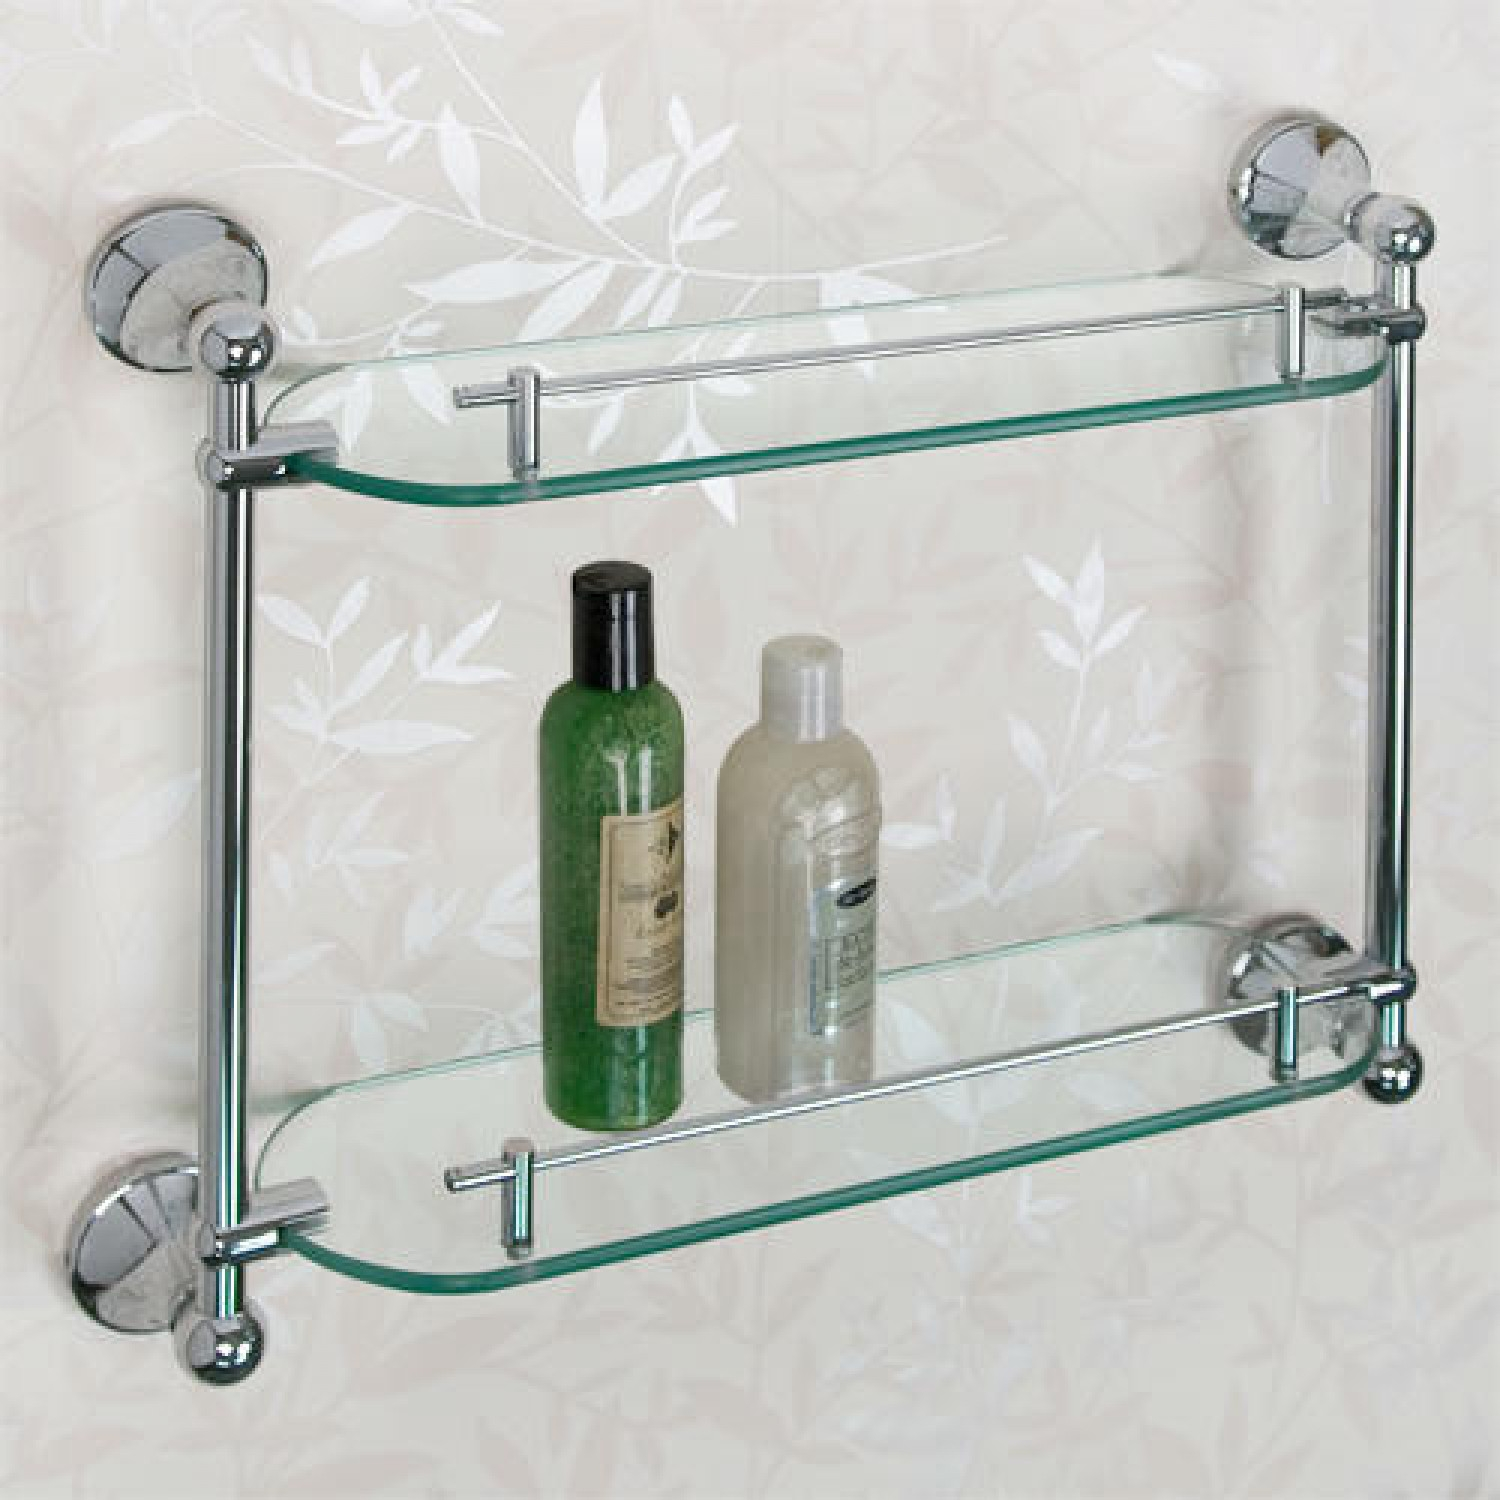 ballard tempered glass shelf two shelves